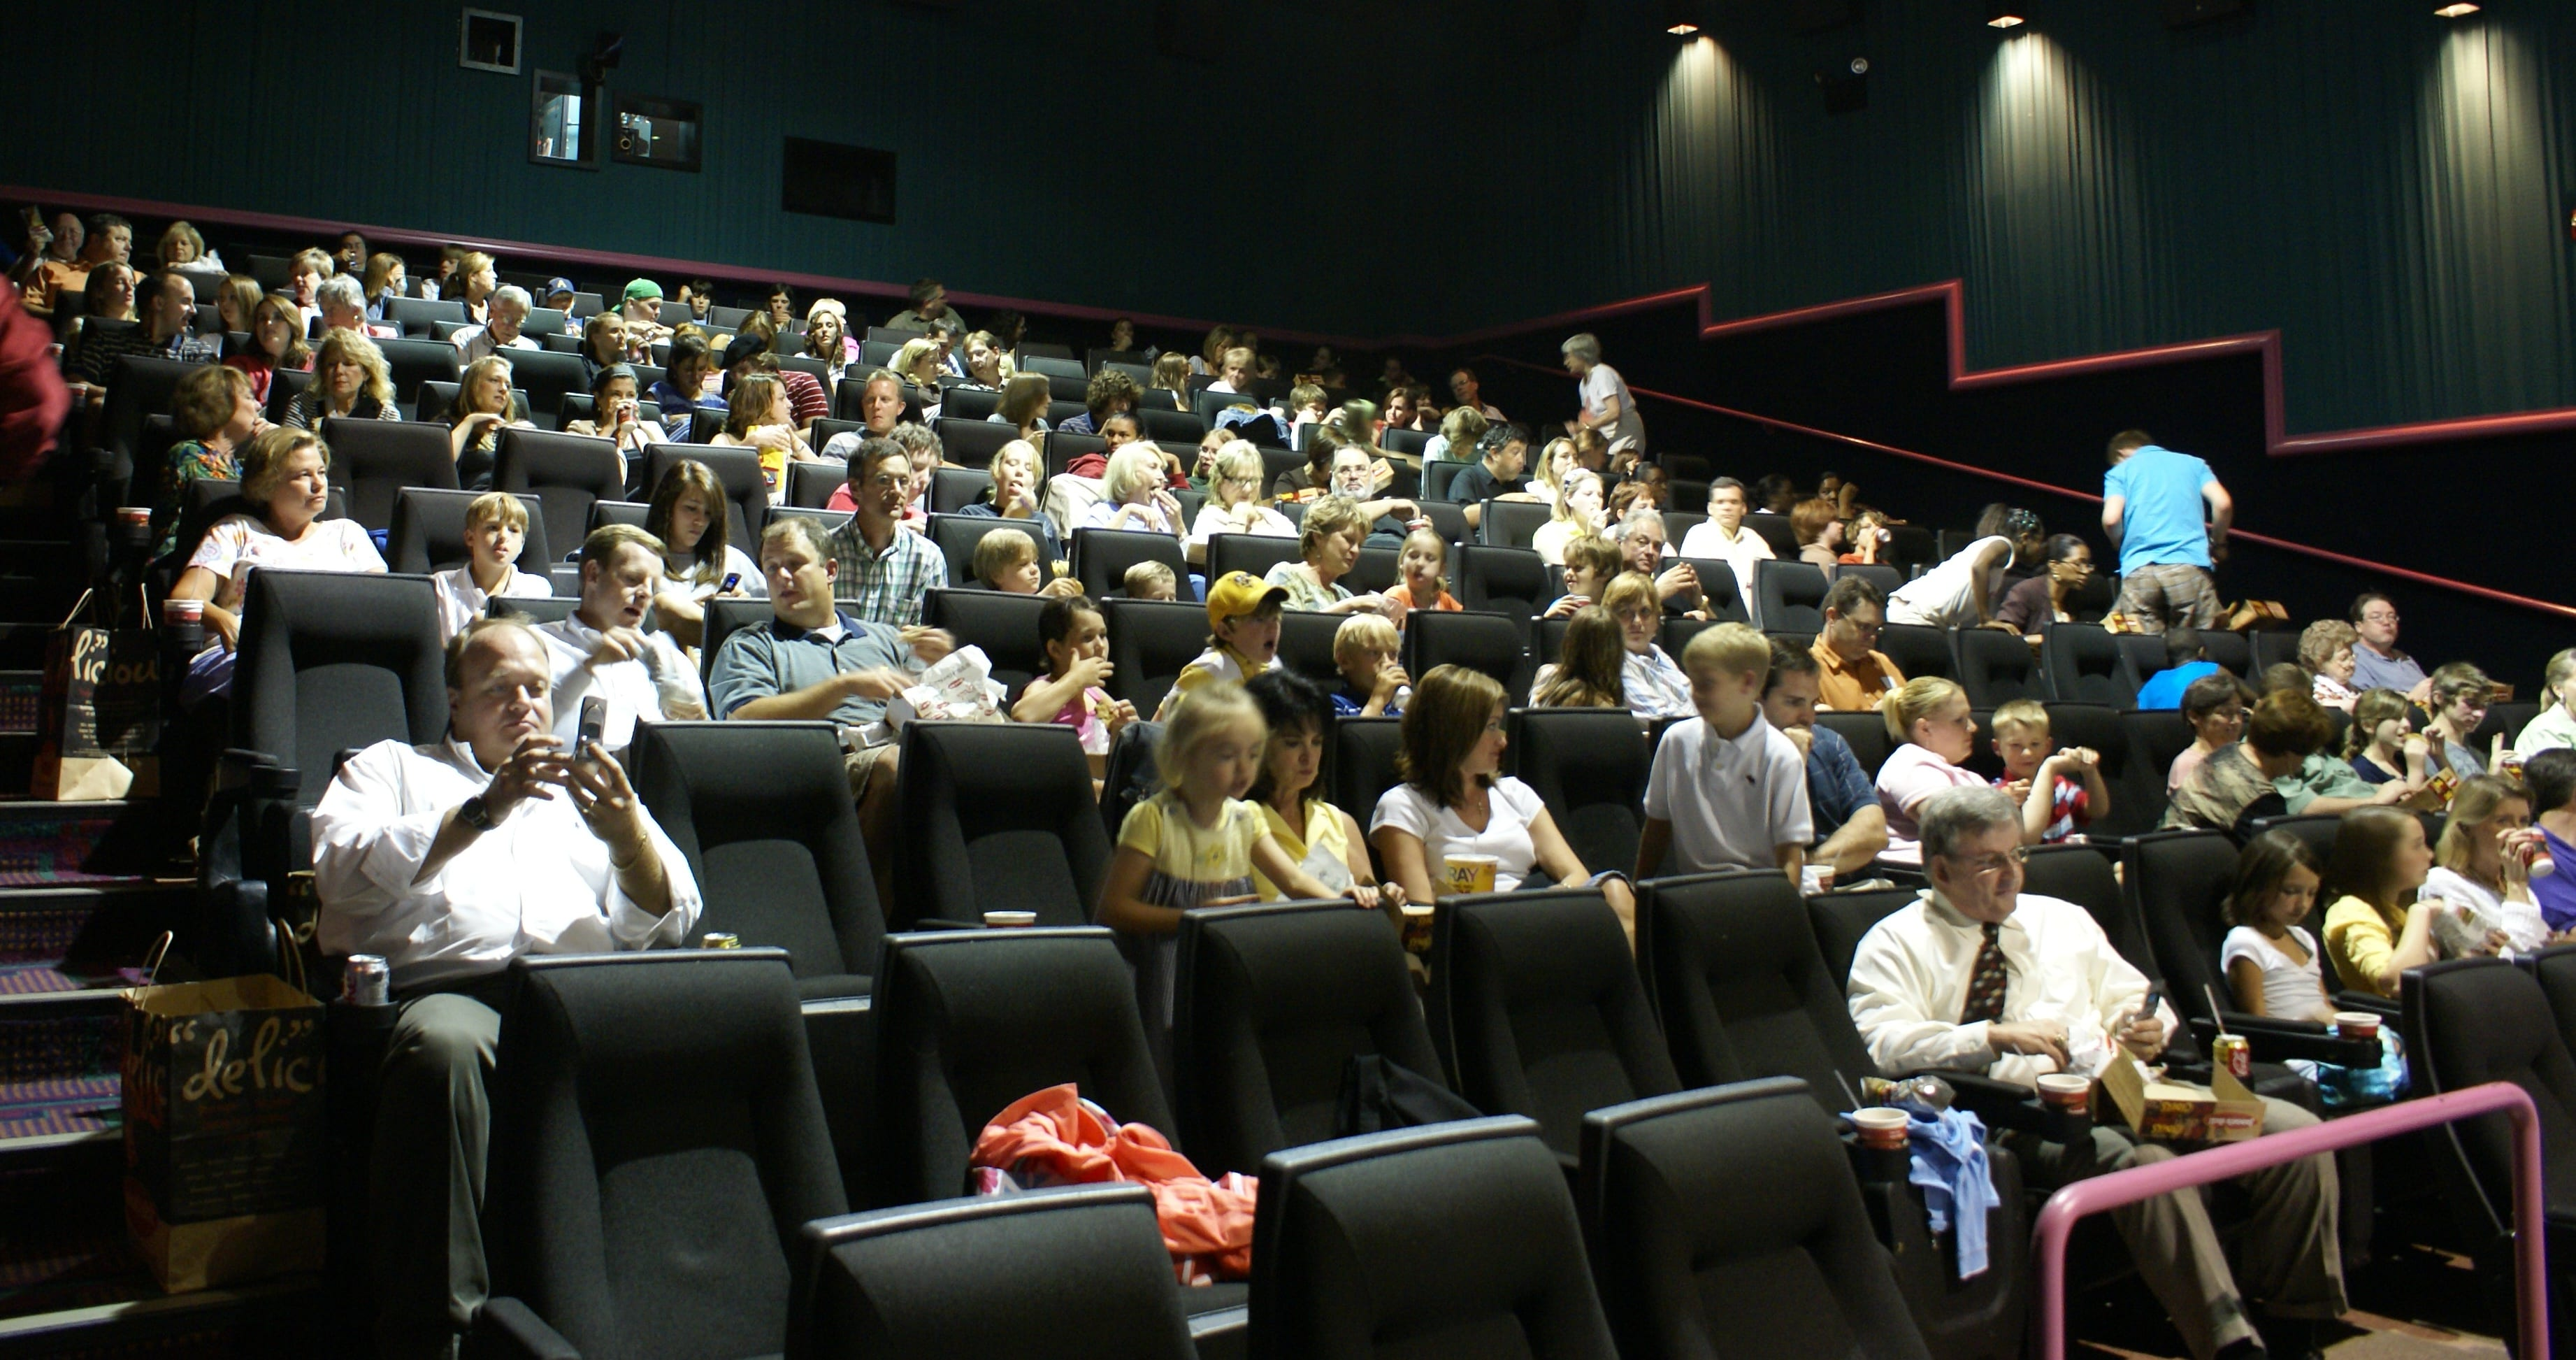 impatient theatre goers wait for the film to start